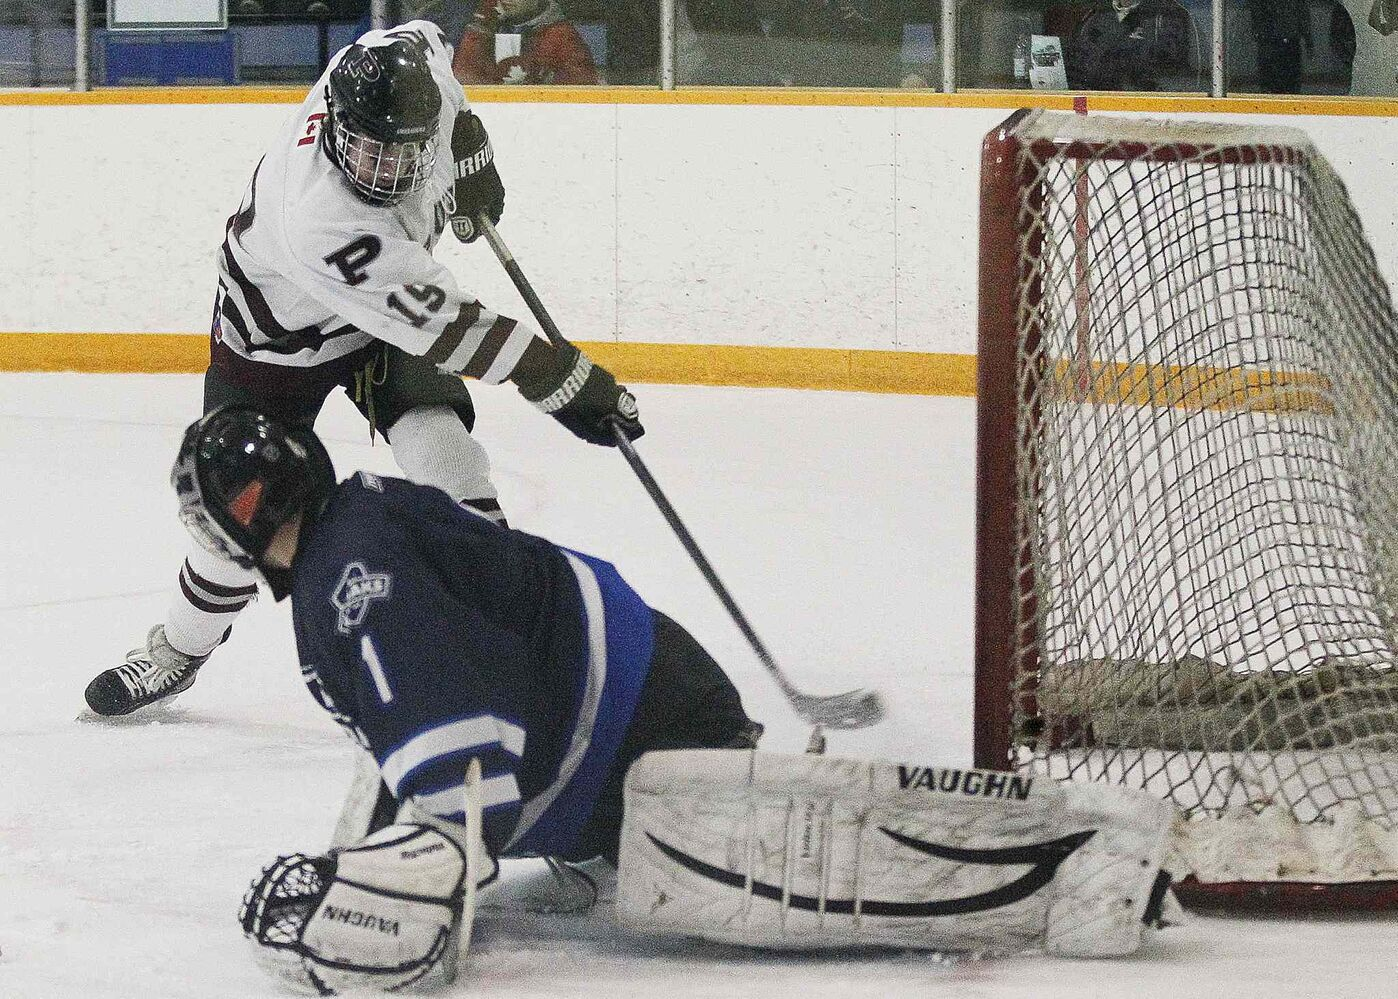 The St. Paul's Crusaders J.P Lovell scores on River East Kodiaks goaltender Myles Piche.